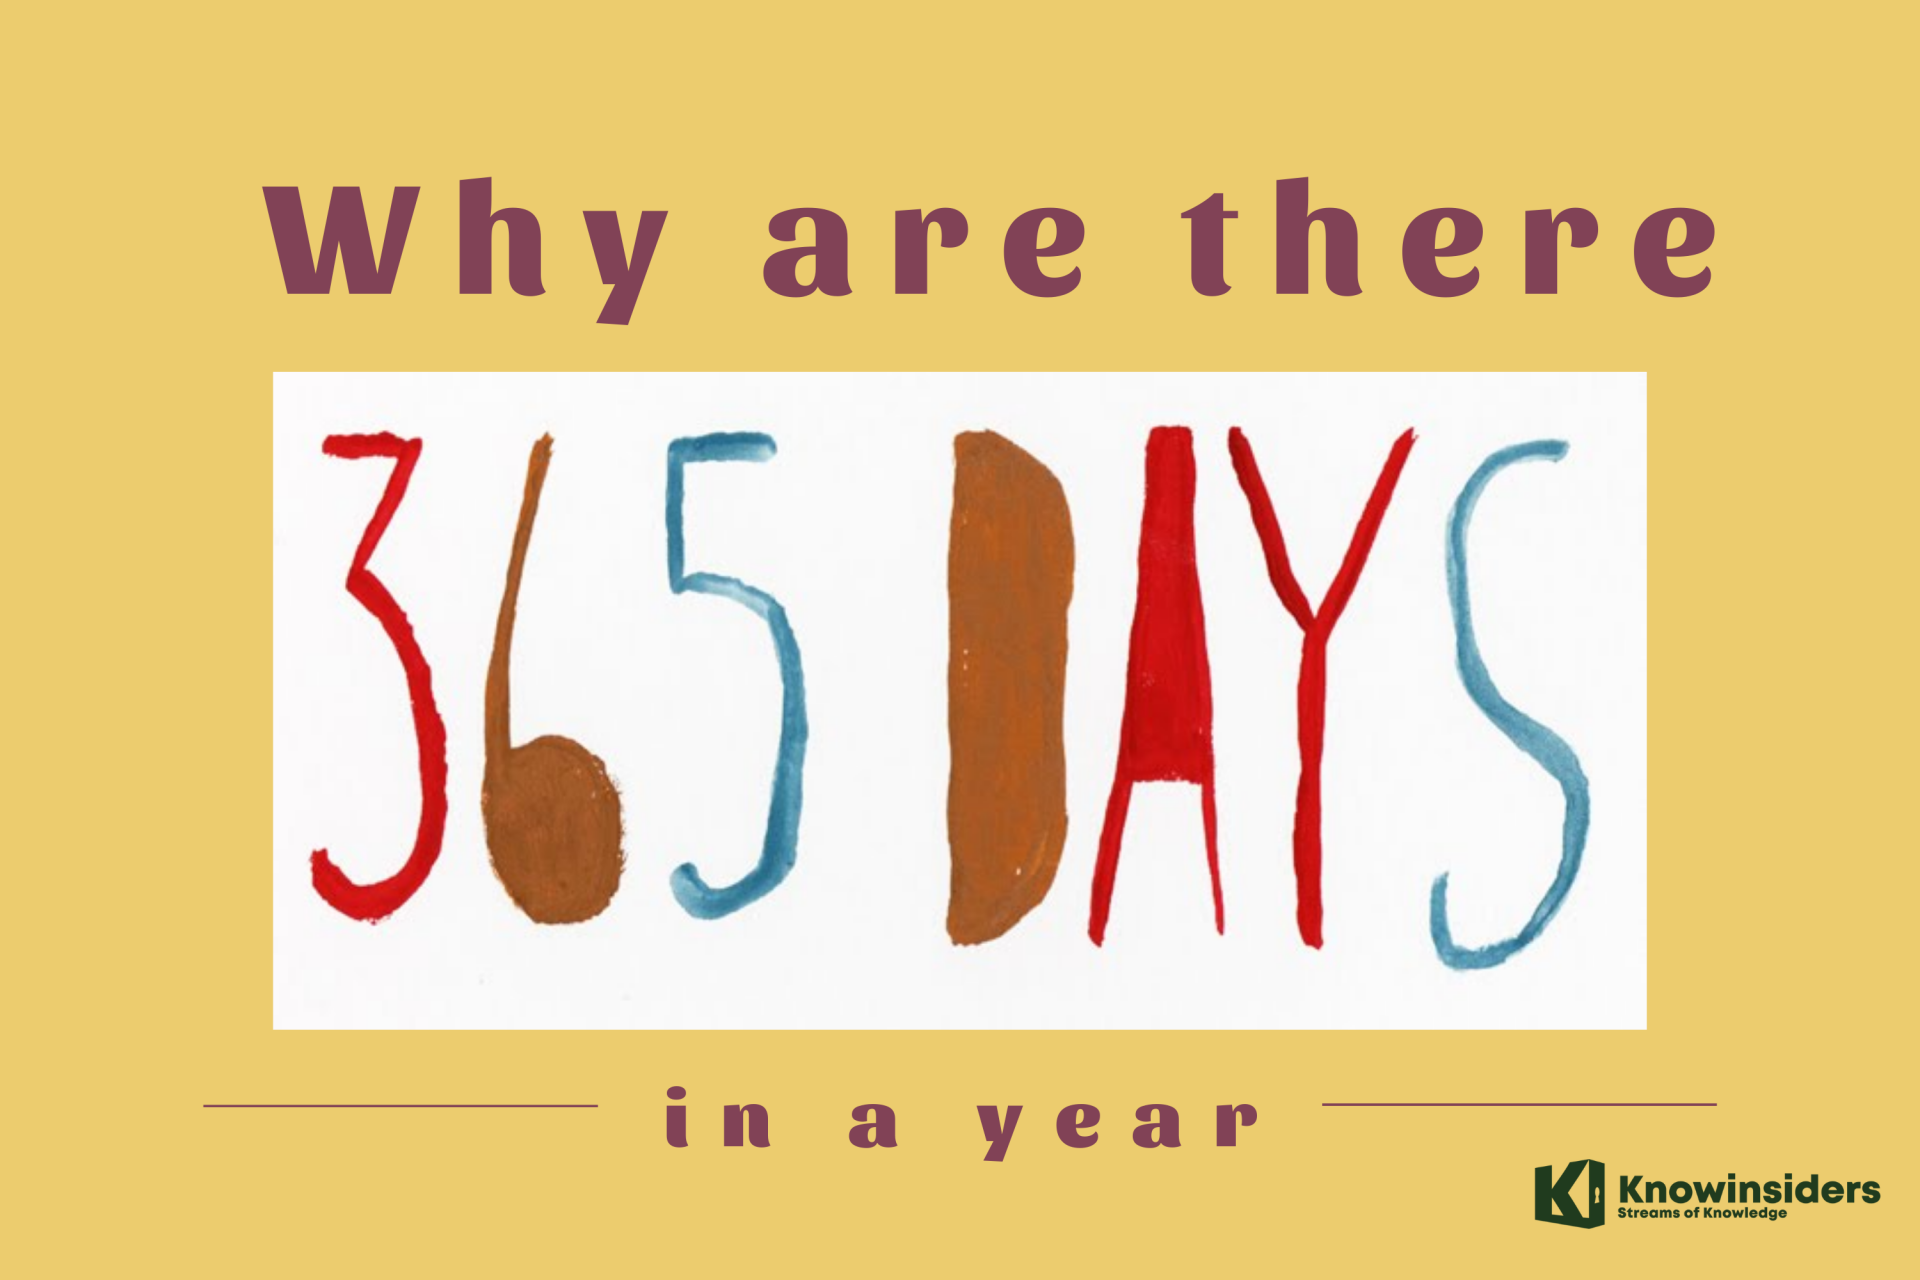 Why are There 365 Days in a Year?